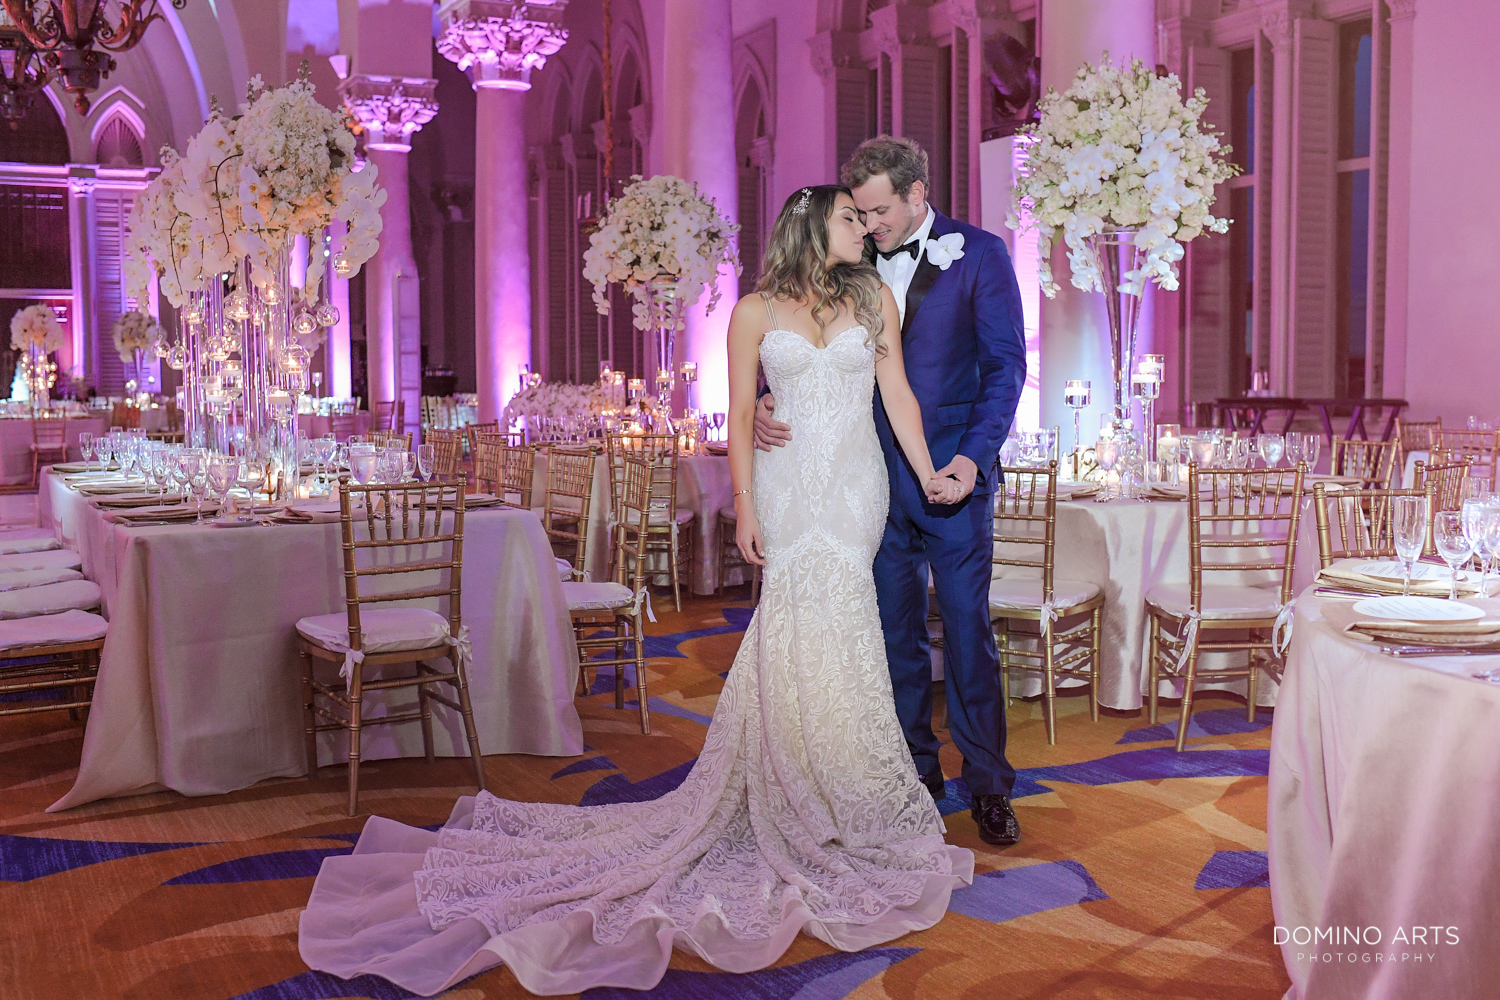 Elegant Luxury boutique wedding décor at Boca Raton Resort